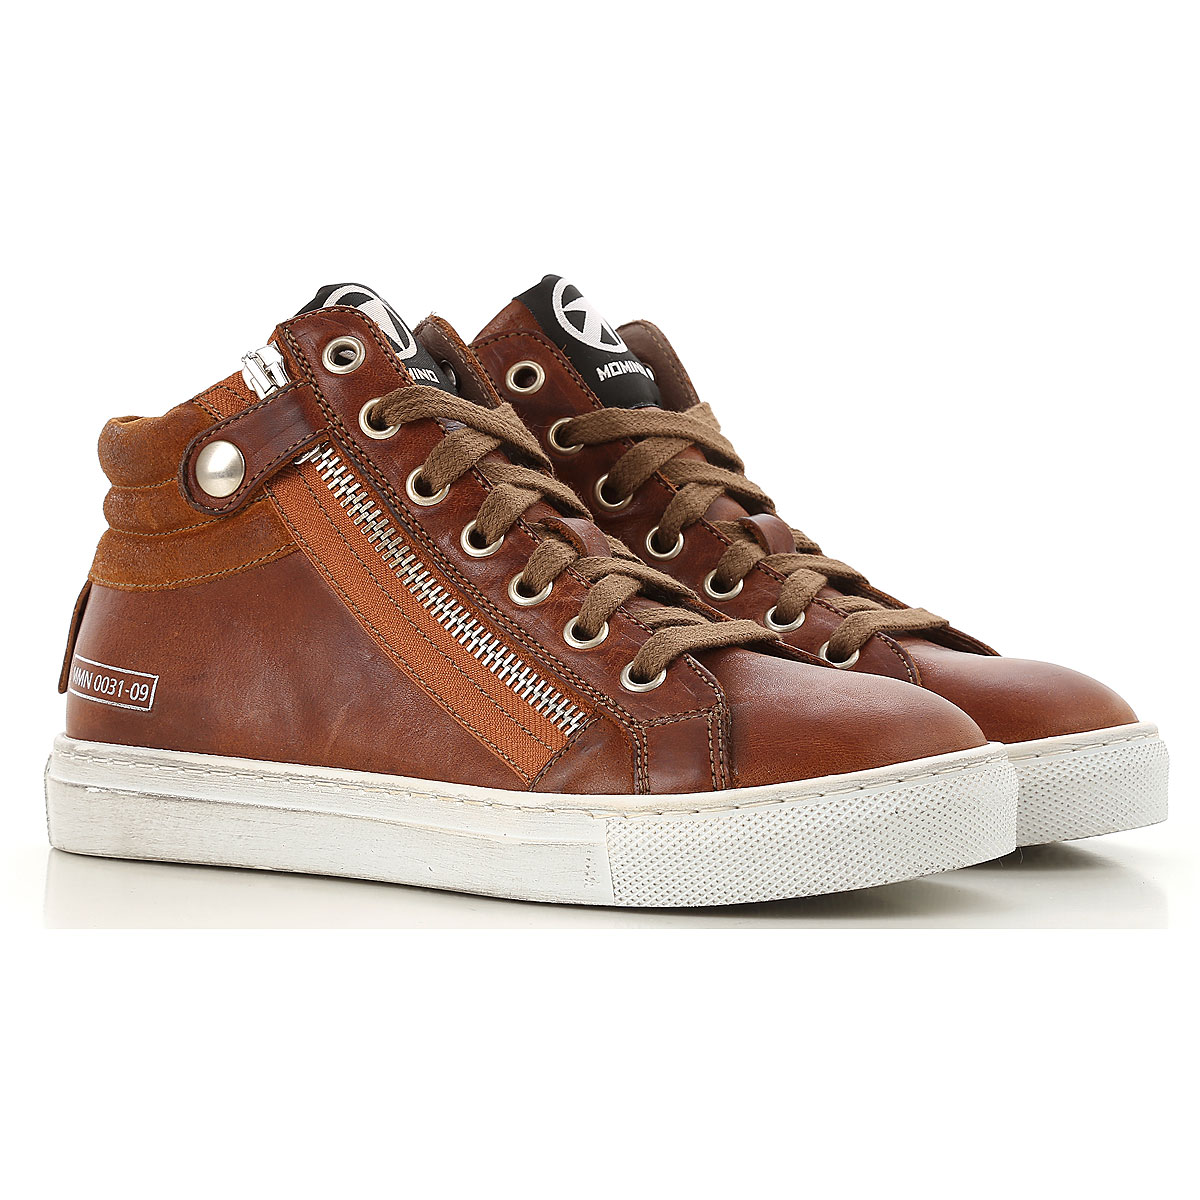 Image of Momino Kids Shoes for Boys, Brown, Leather, 2017, 31 32 34 35 36 37 38